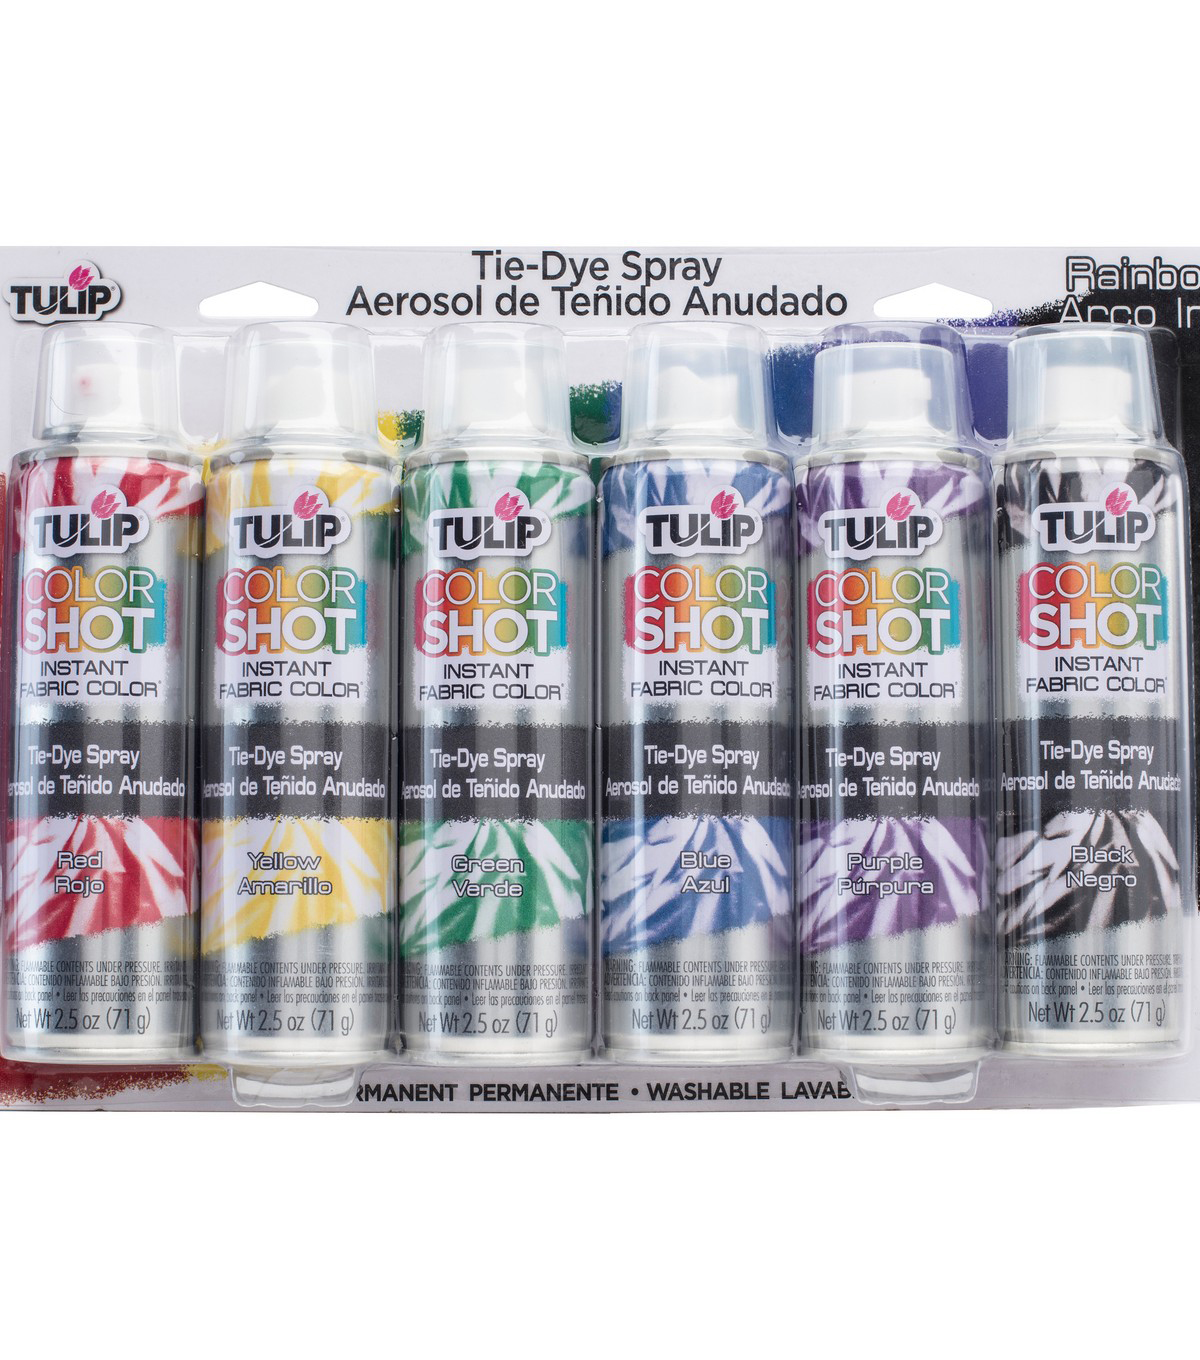 Tulip ColorShot 6 pk Instant Fabric Color Tie-Dye Sprays-Rainbow